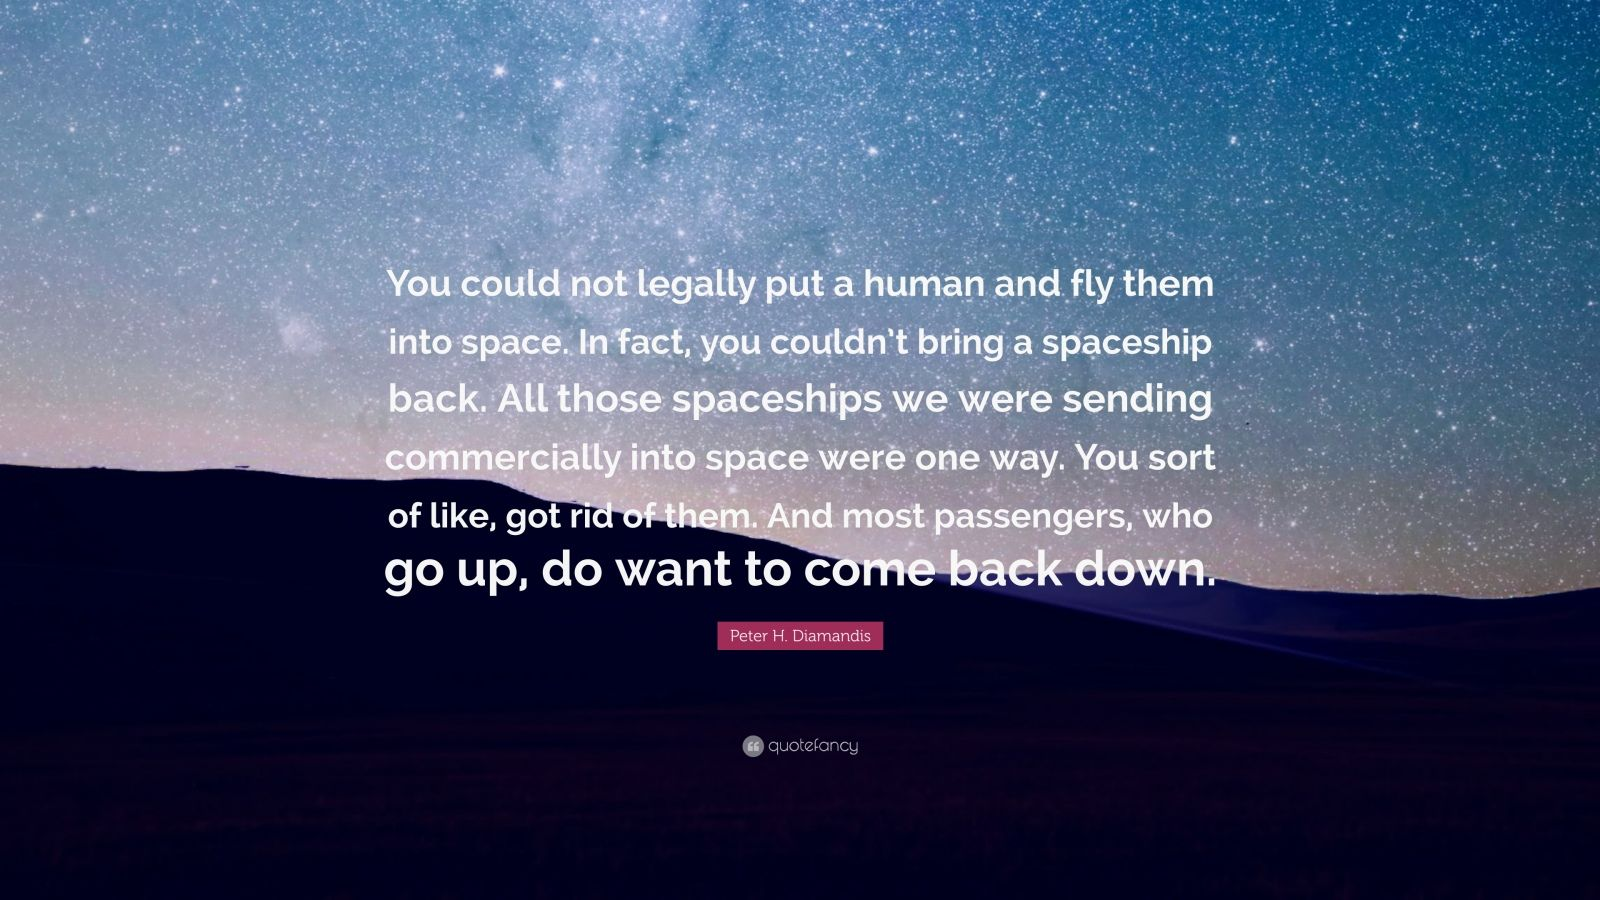 """Peter H. Diamandis Quote: """"You could not legally put a human and fly them into space. In fact, you couldn't bring a spaceship back. All those spaceships we were sending commercially into space were one way. You sort of like, got rid of them. And most passengers, who go up, do want to come back down."""""""